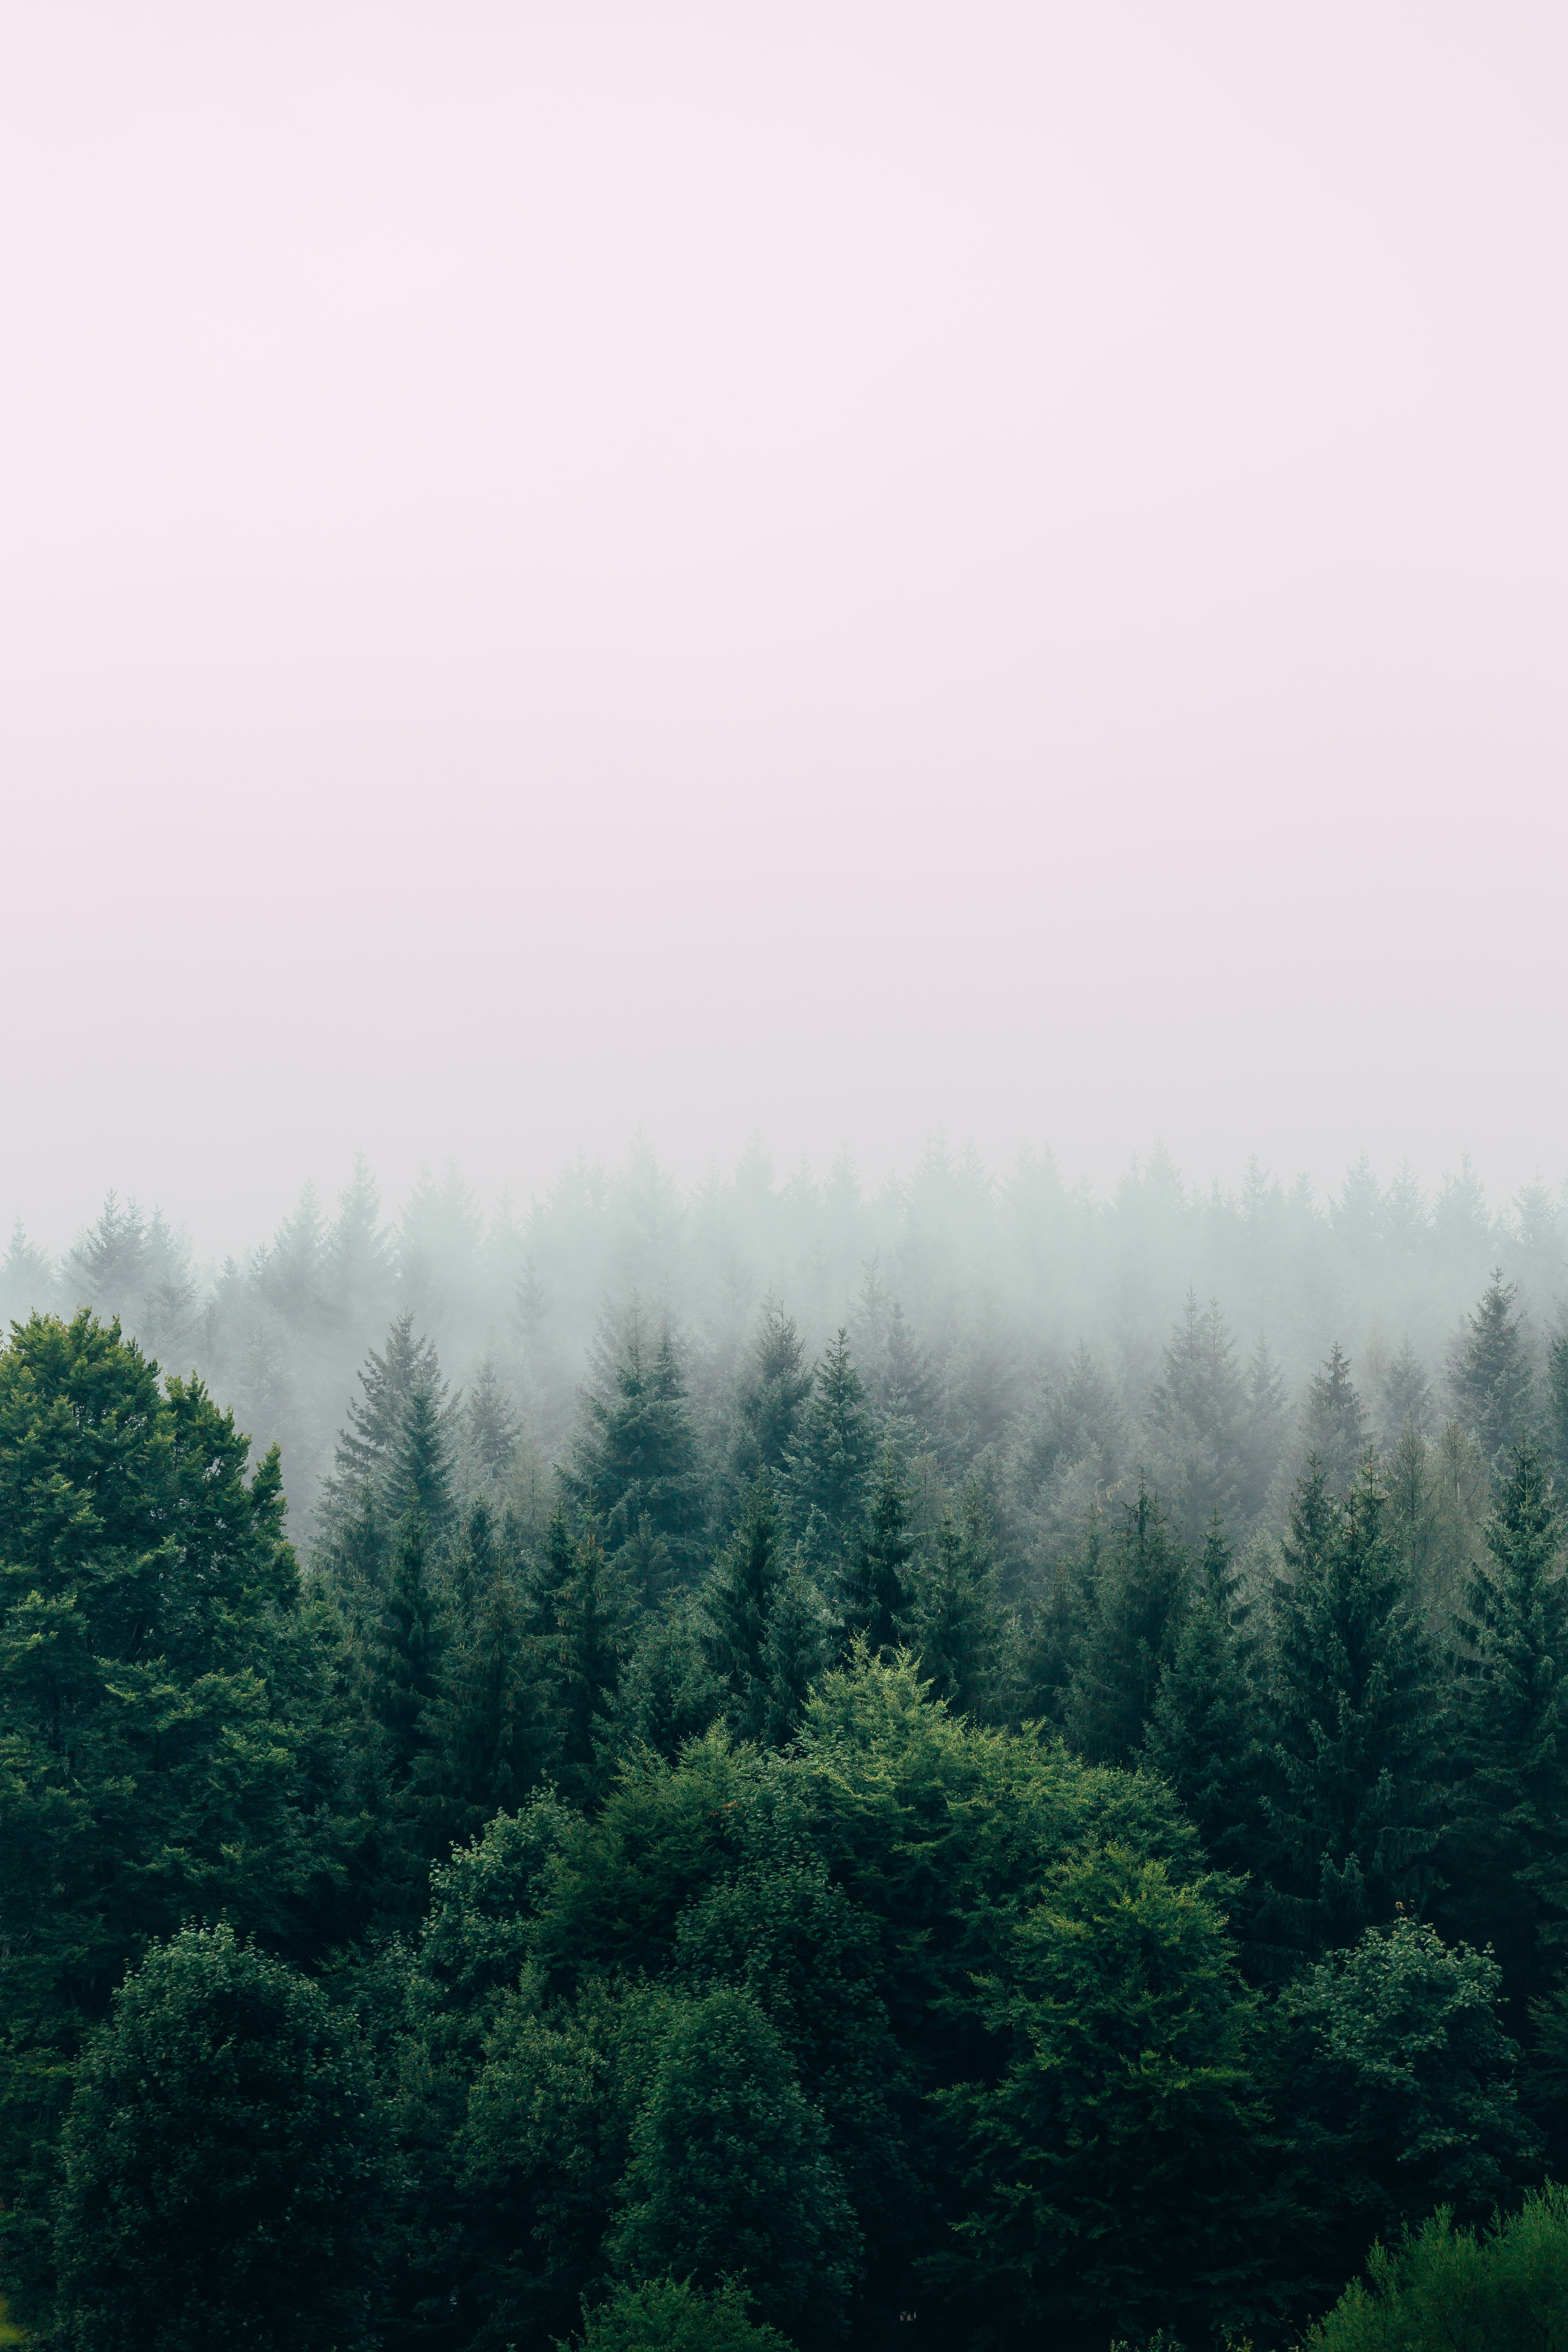 Tree tops in a fog covered forest.